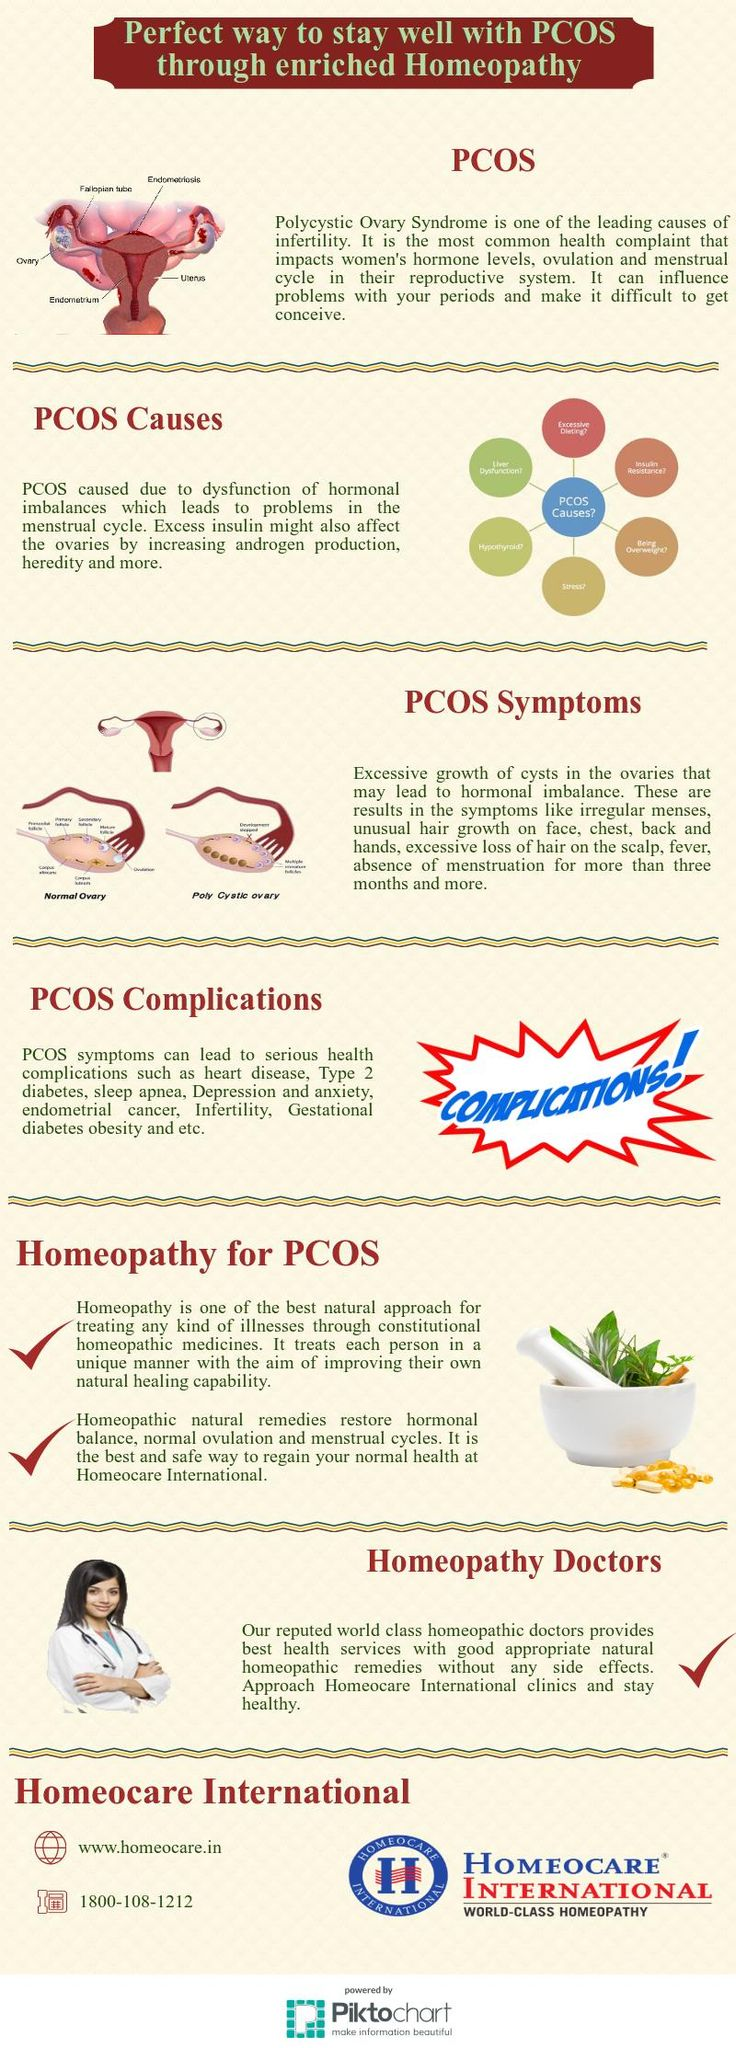 Polycystic Ovary Syndrome is a complex condition in which women's hormone levels are out of balance. Women with PCOS grow many small cysts on their ovaries. These cysts are not harmful, but lead to hormone imbalances. To get out of these PCOS hormonal disabilities choose natural Homeopathy Treatment at Homeocare International. It can improve and regularize the menstrual cycle. Homeopathic remedies cure all acute and chronic ailments with zero side effects across the South India.